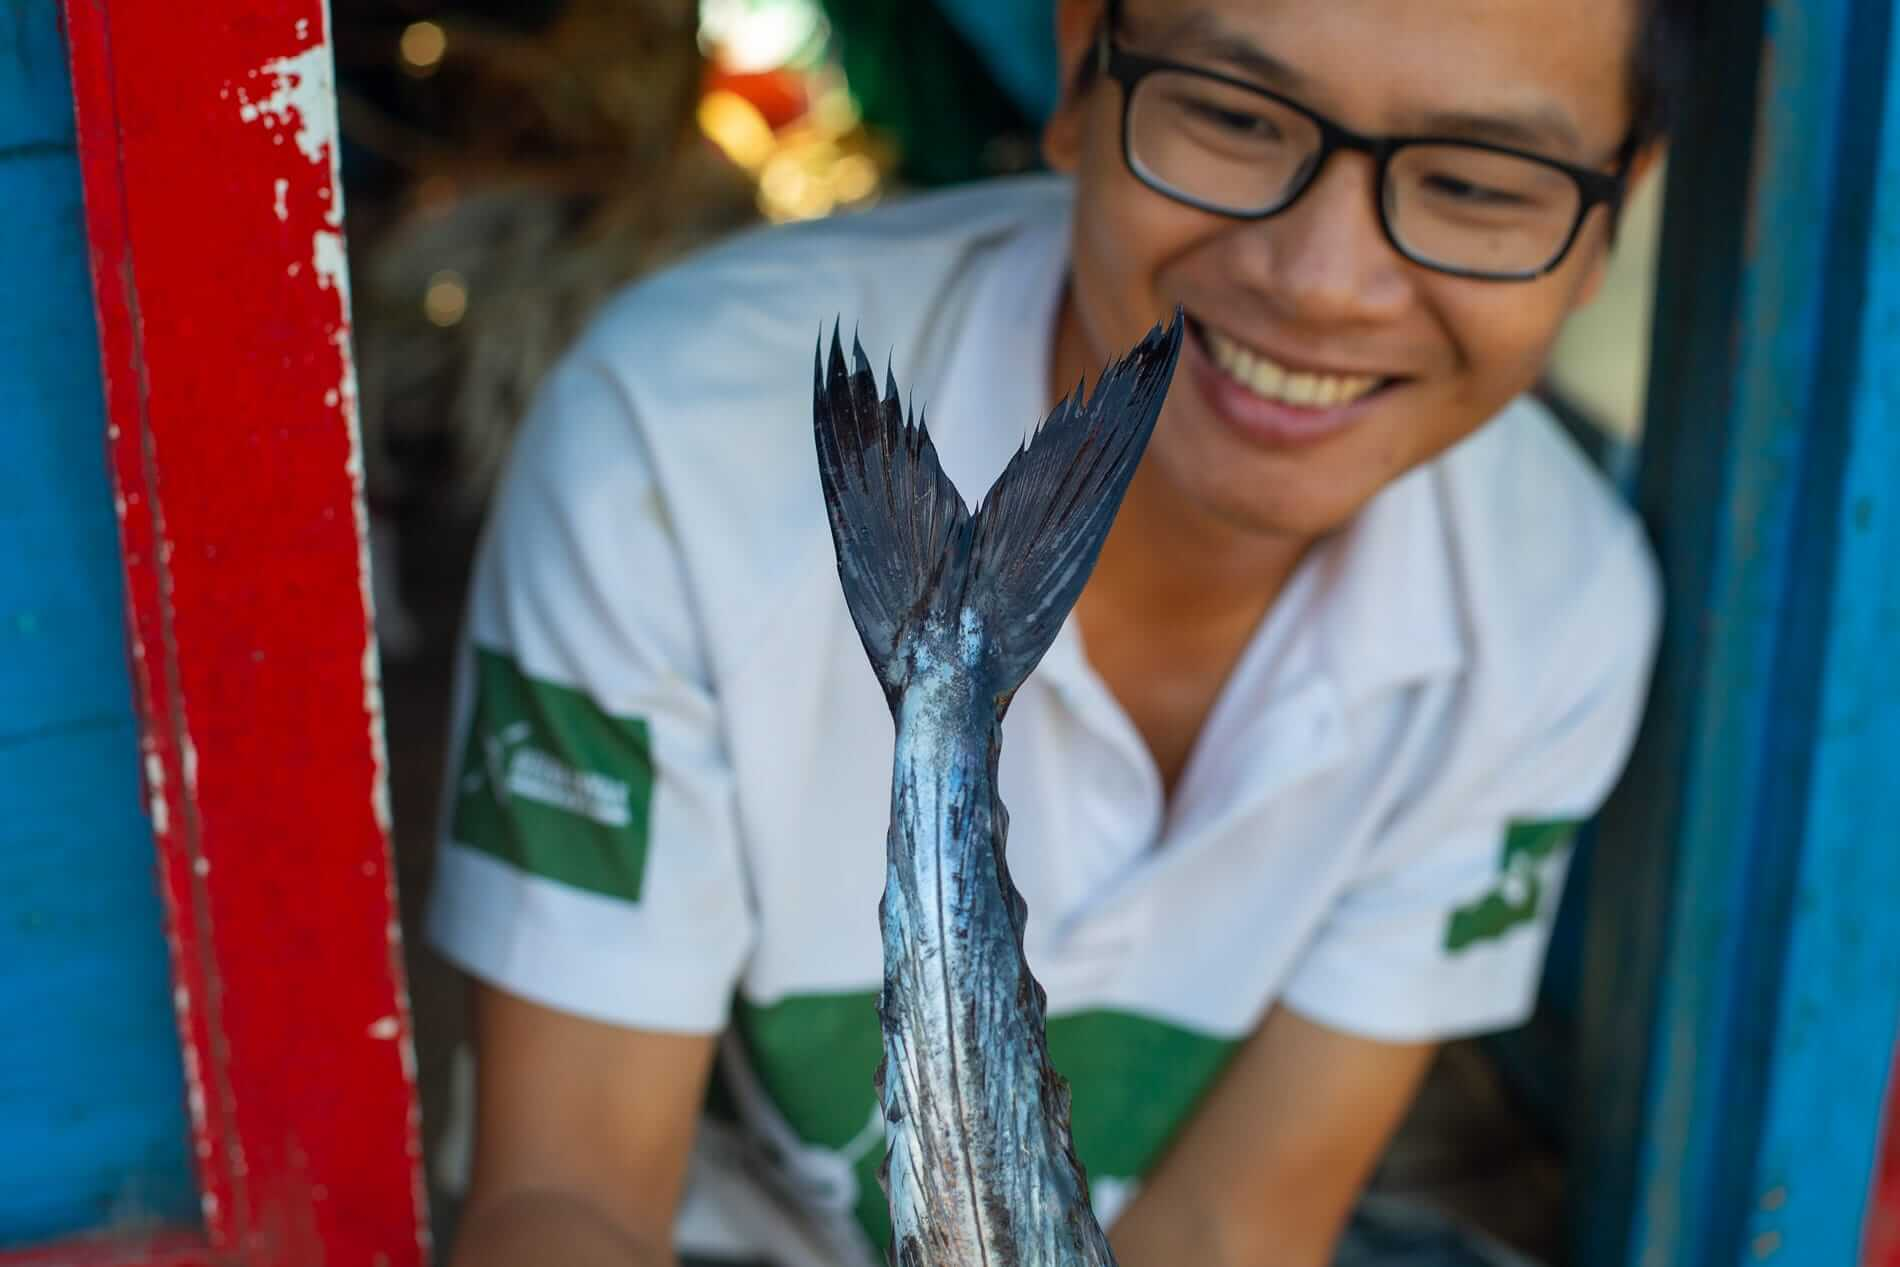 Kien holding a fish at the fish market - What to do in Hoi An